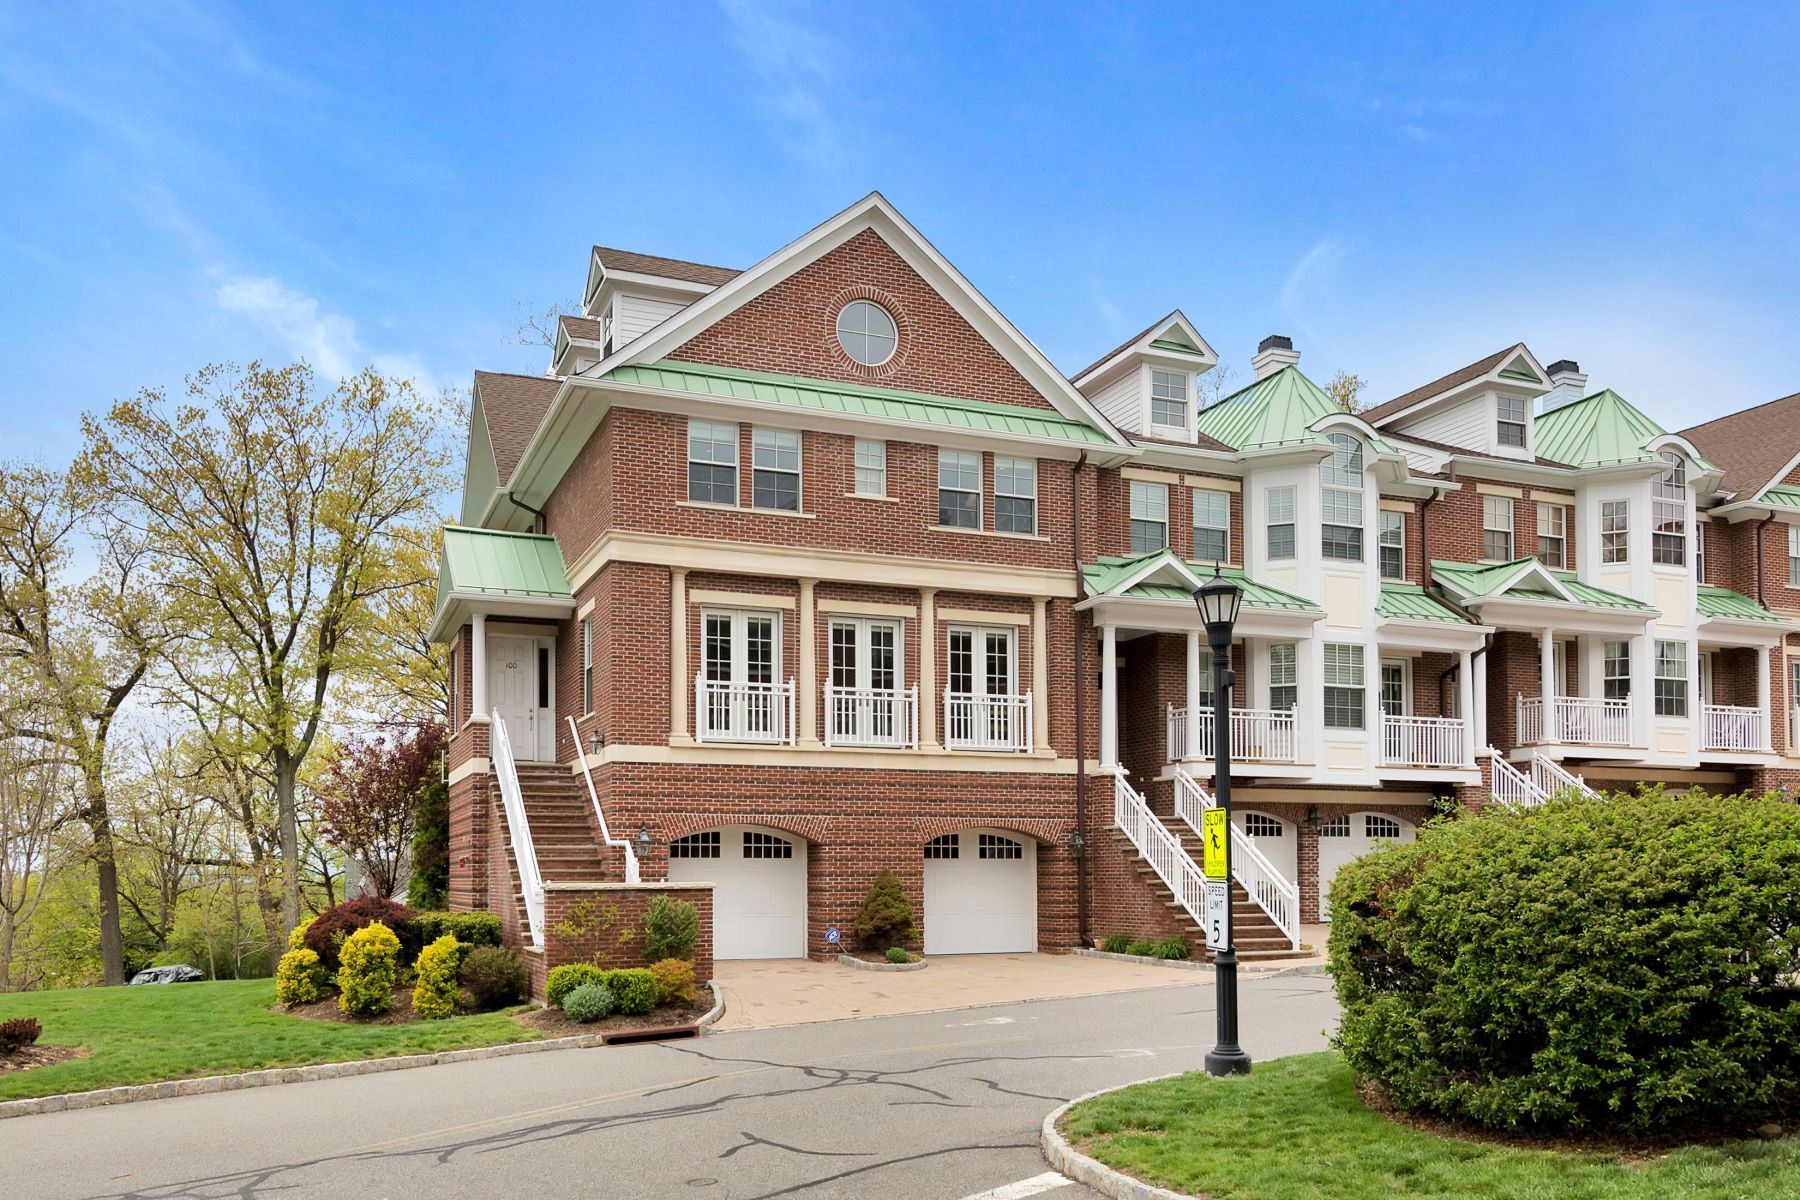 Townhouse for Sale at Luxury Townhouse 100 Heights Lane, Tenafly, New Jersey 07670 United States